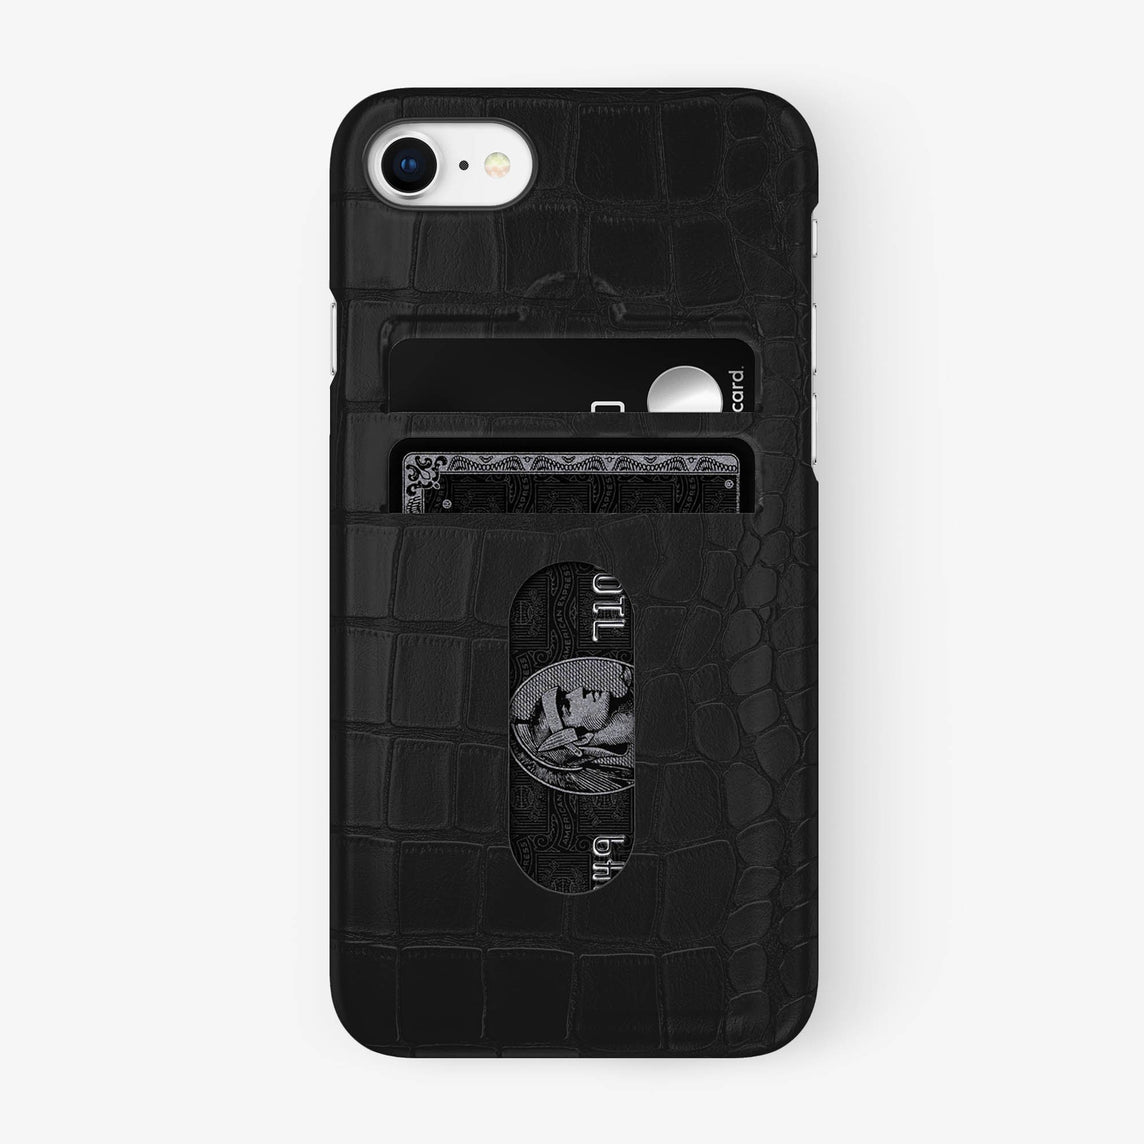 Alligator Card Holder Case iPhone 7/8 | Phantom Black - Black